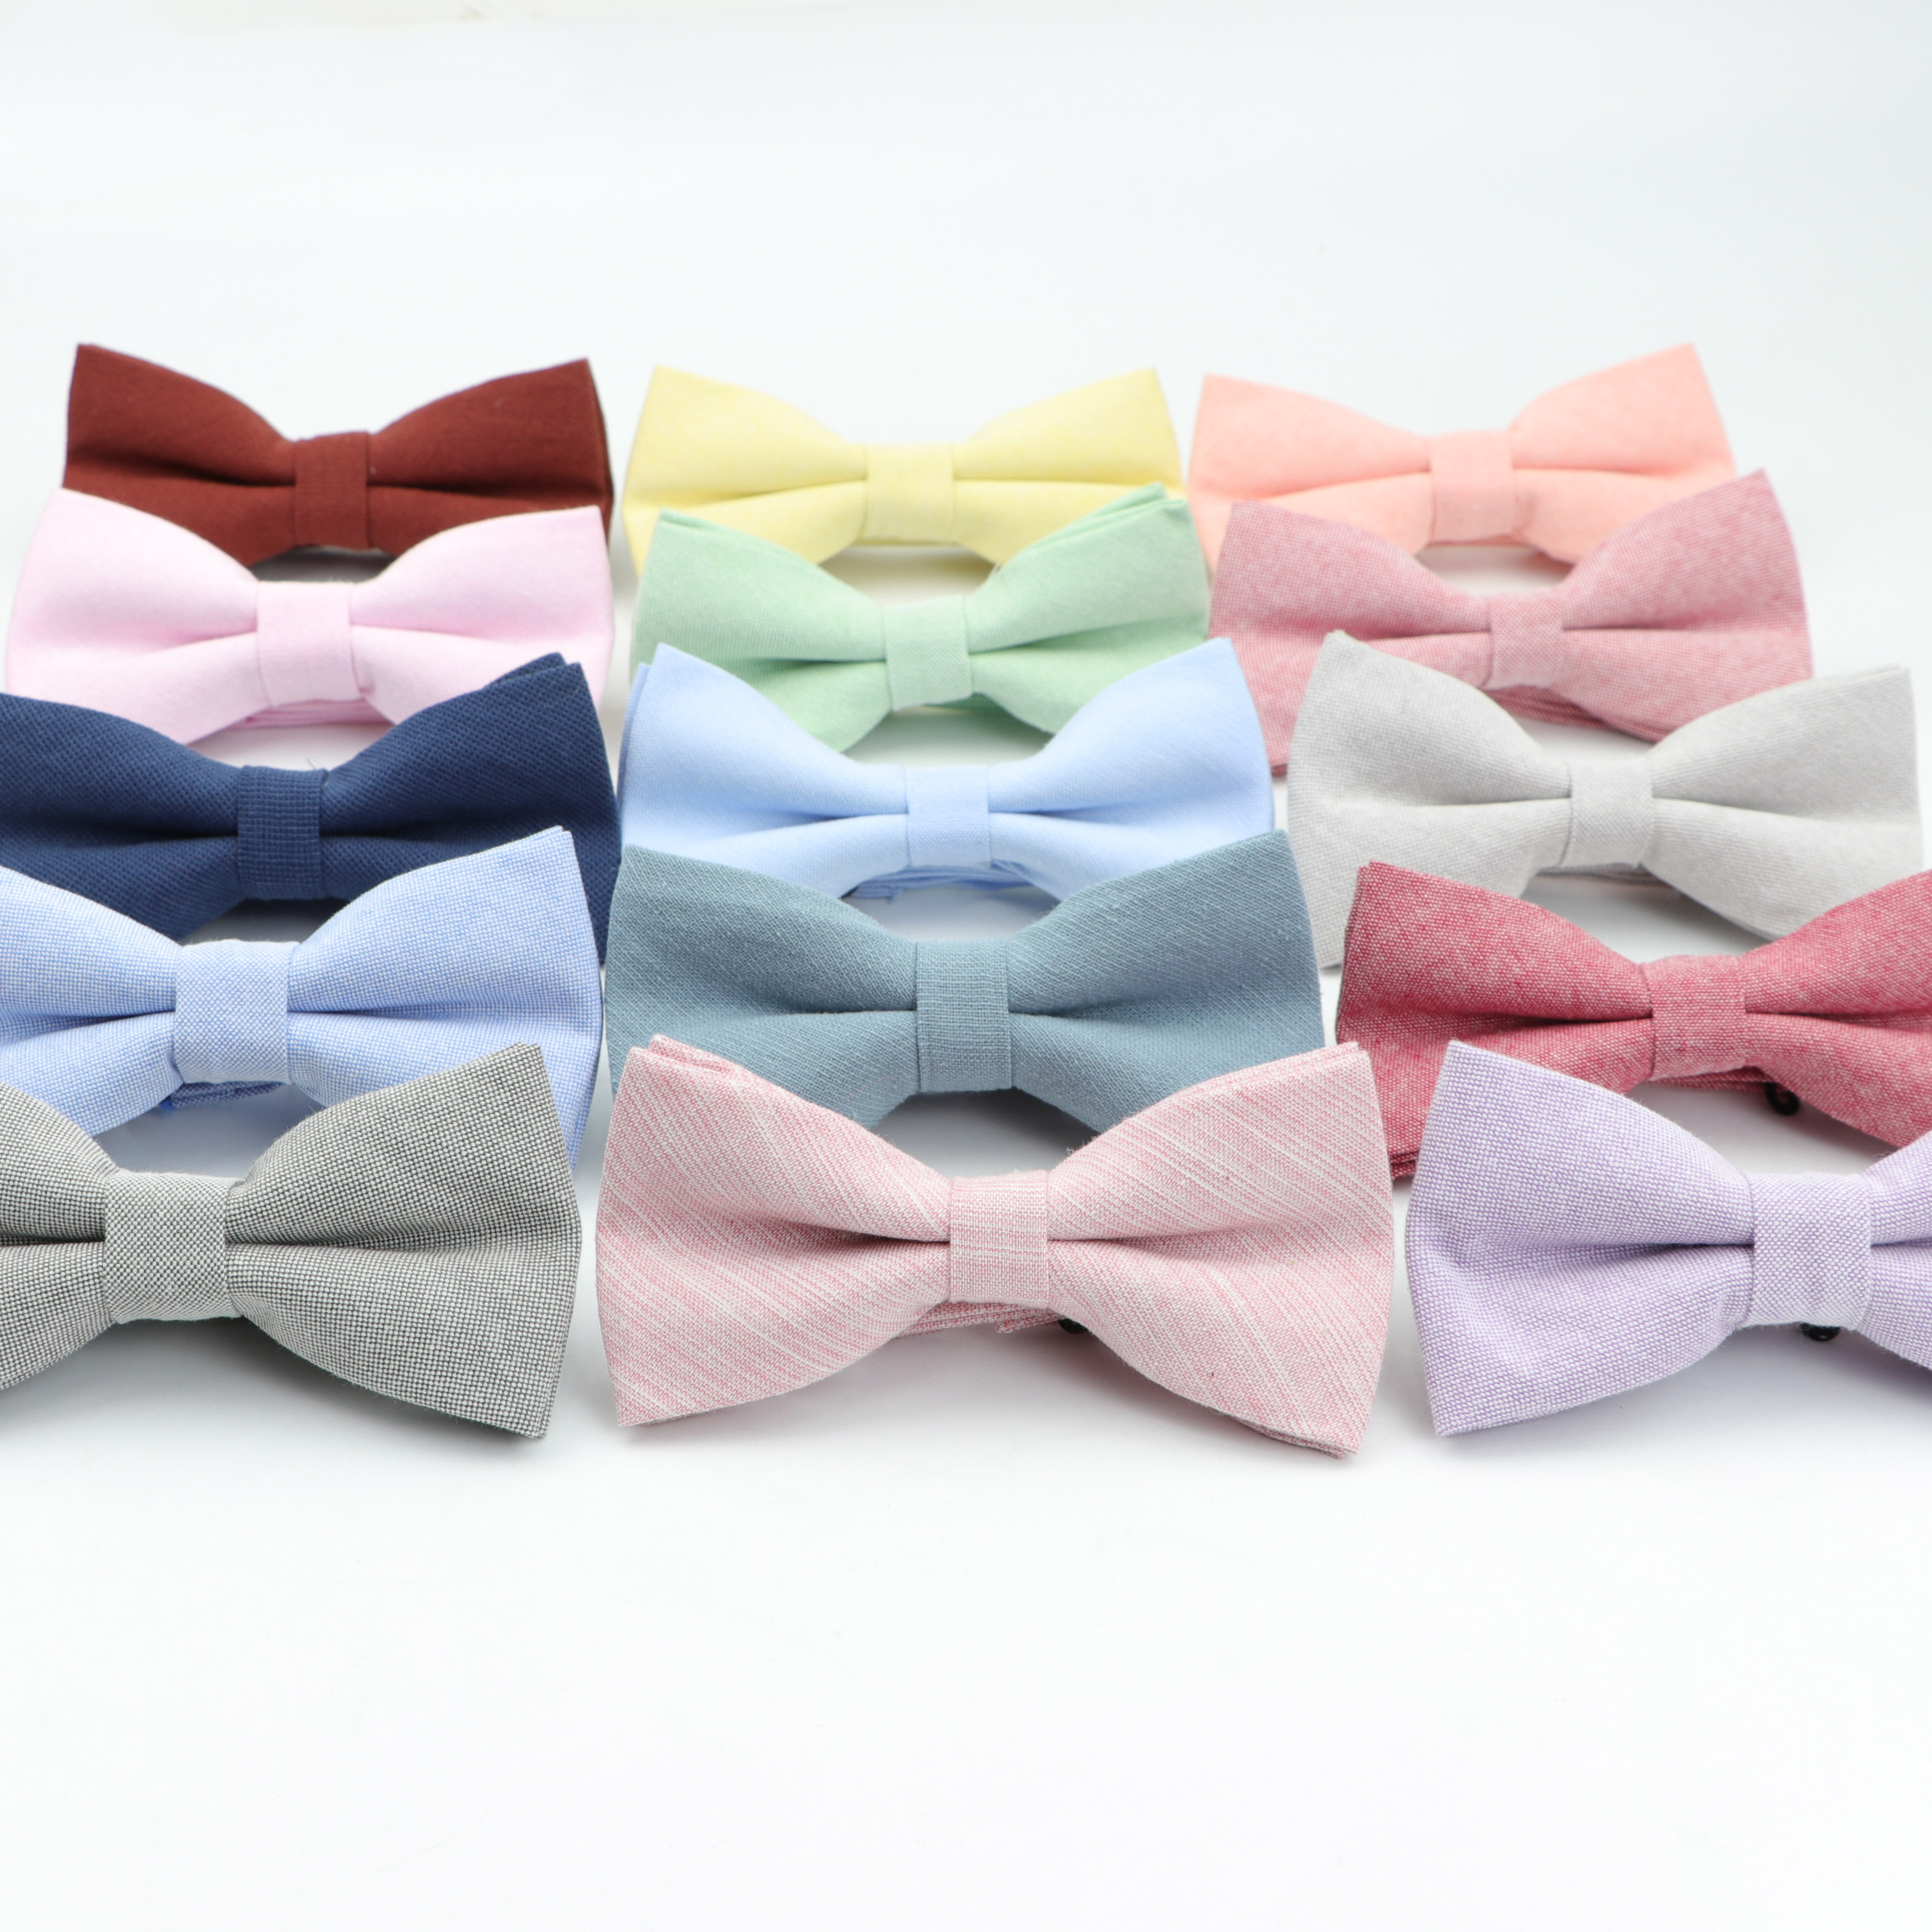 Solid Color Bow Tie Cotton Flexible Bowtie Smooth Necktie Soft Pure Colorful Butterfly Decorative Pattern Ties